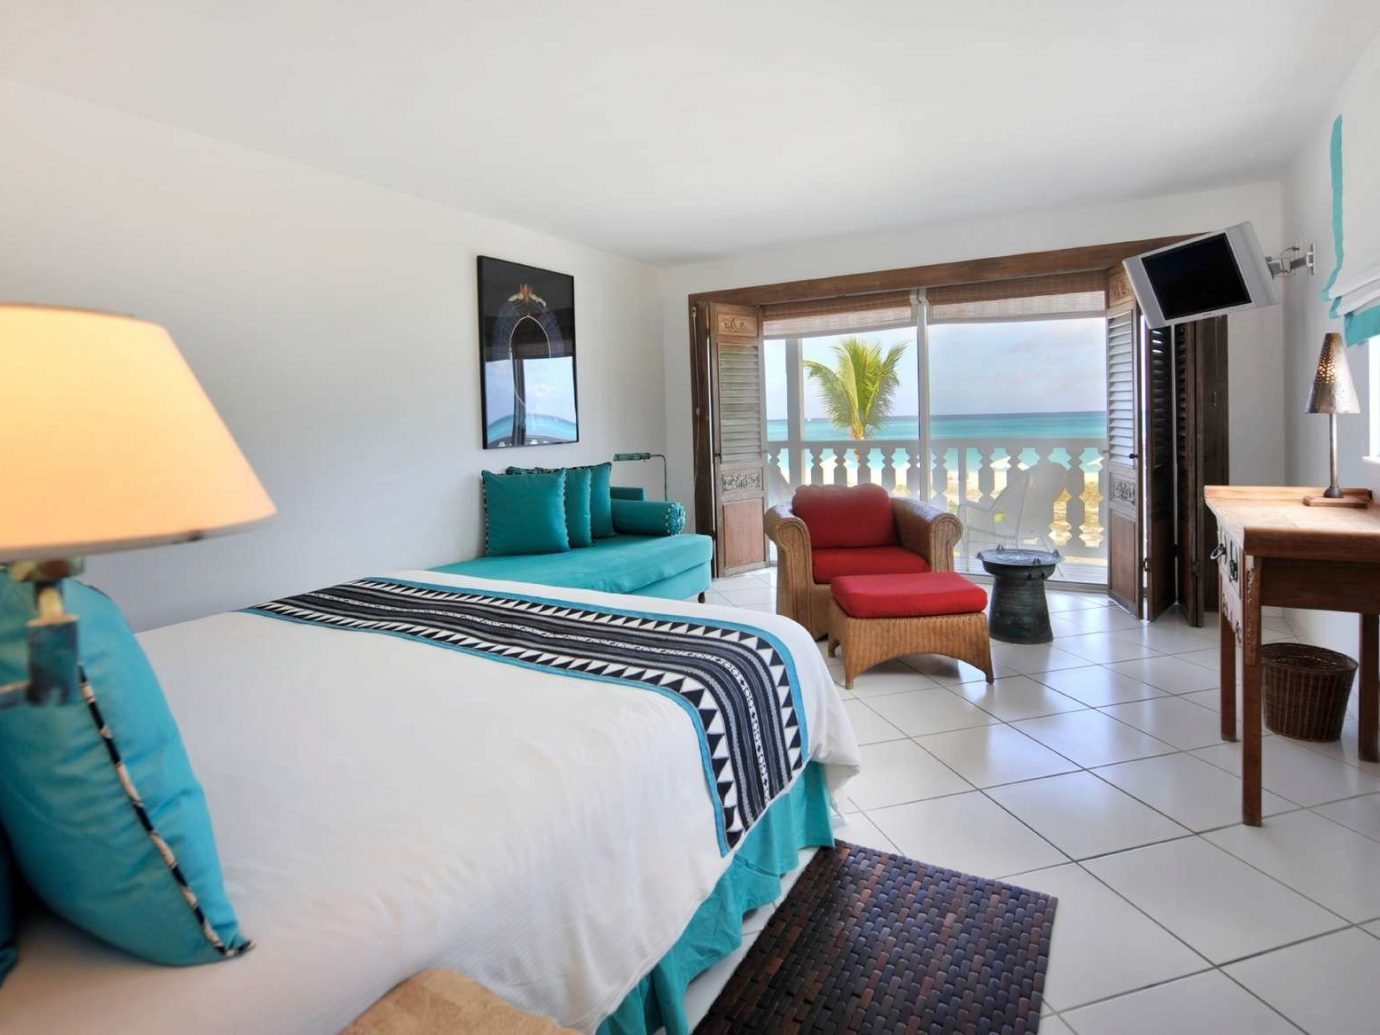 All-Inclusive Resorts caribbean Family Travel Hotels indoor floor wall room bed window ceiling Bedroom Living Suite real estate interior design furniture hotel estate area